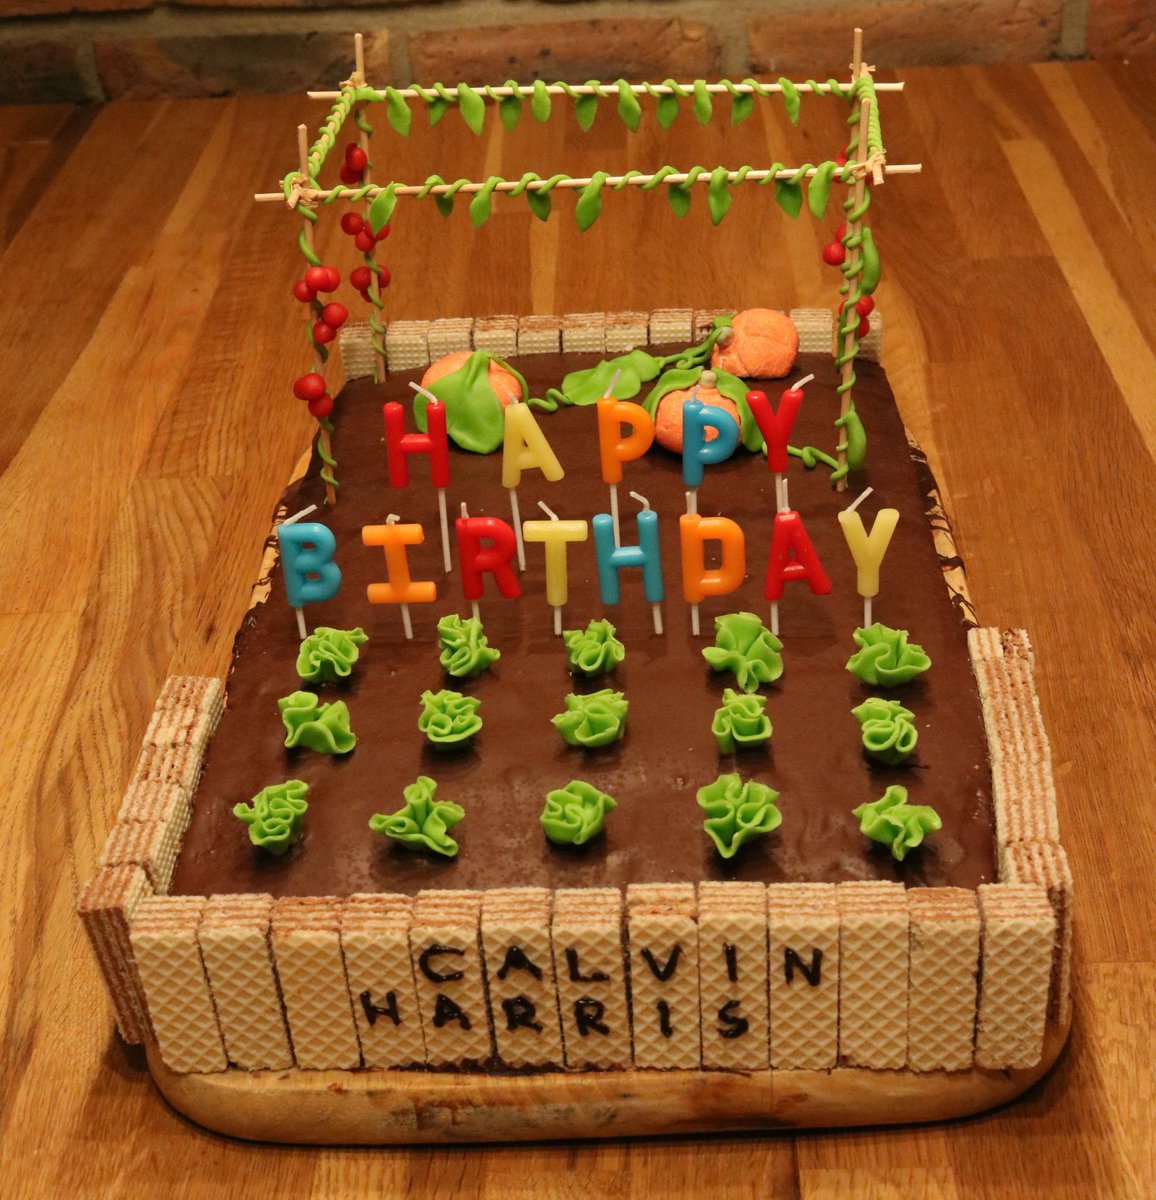 My 2019's birthday cake for @CalvinHarris!!! #nature